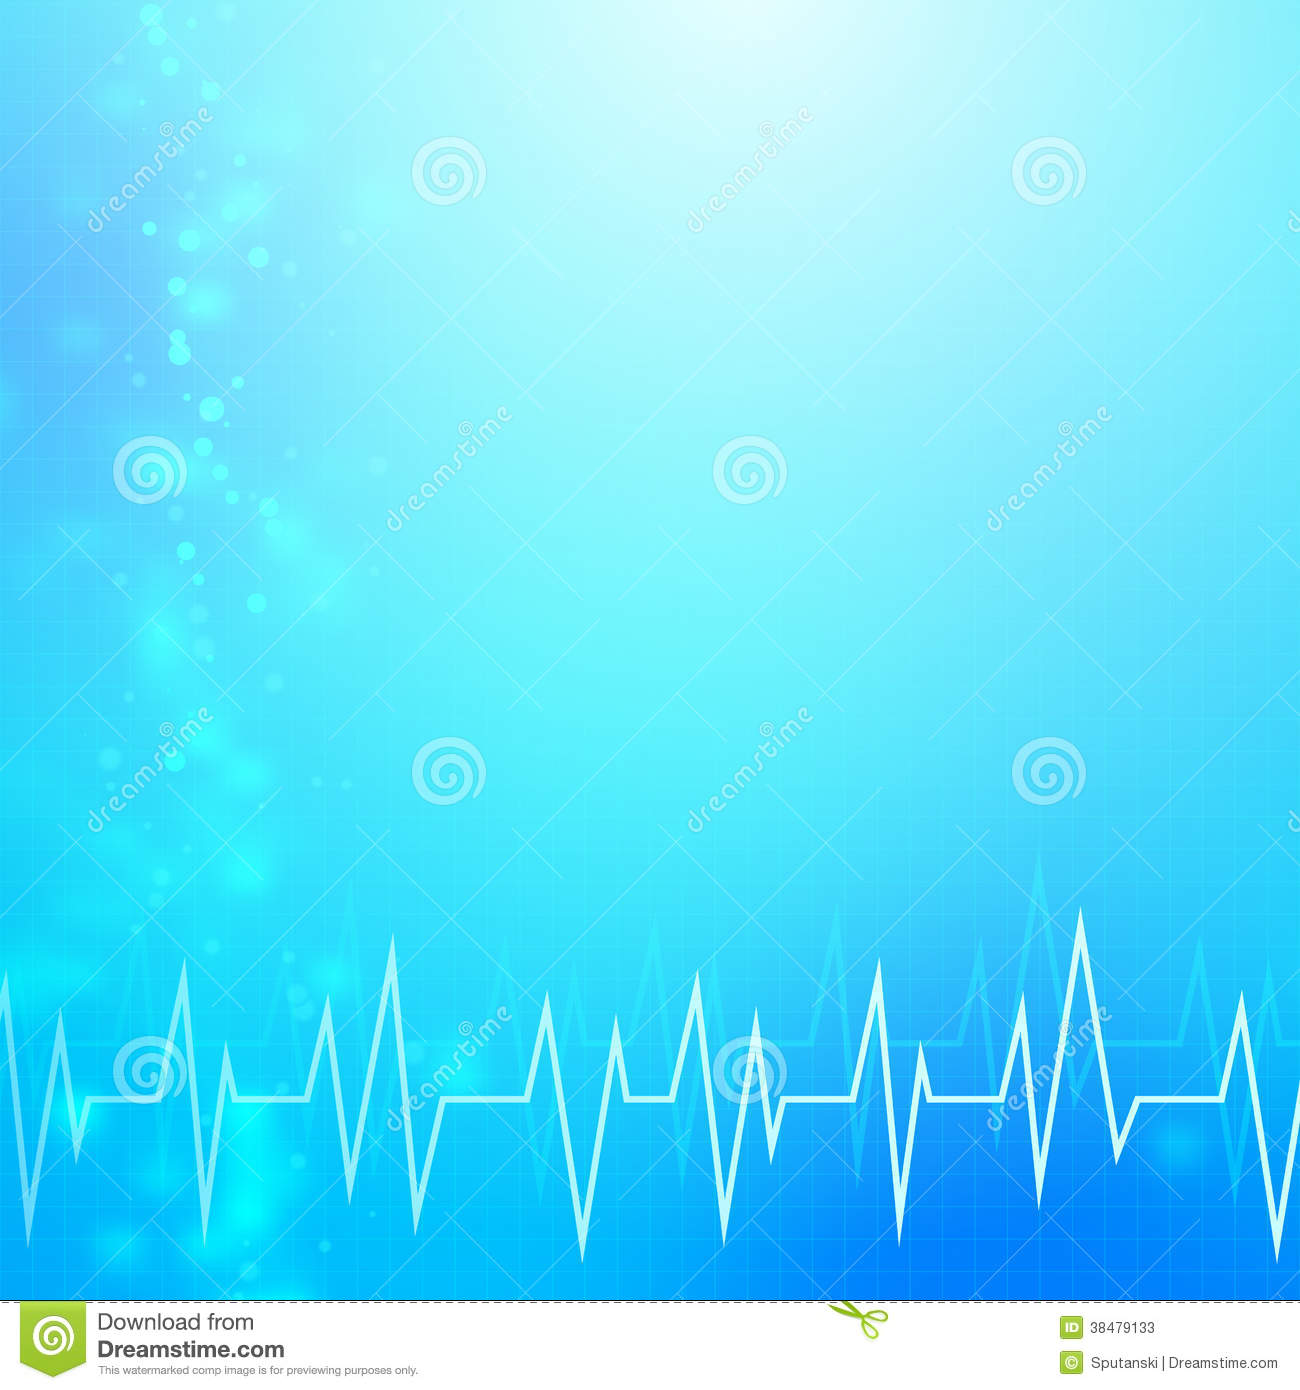 Abstract Blue Medical Background Stock Photos - Image ...